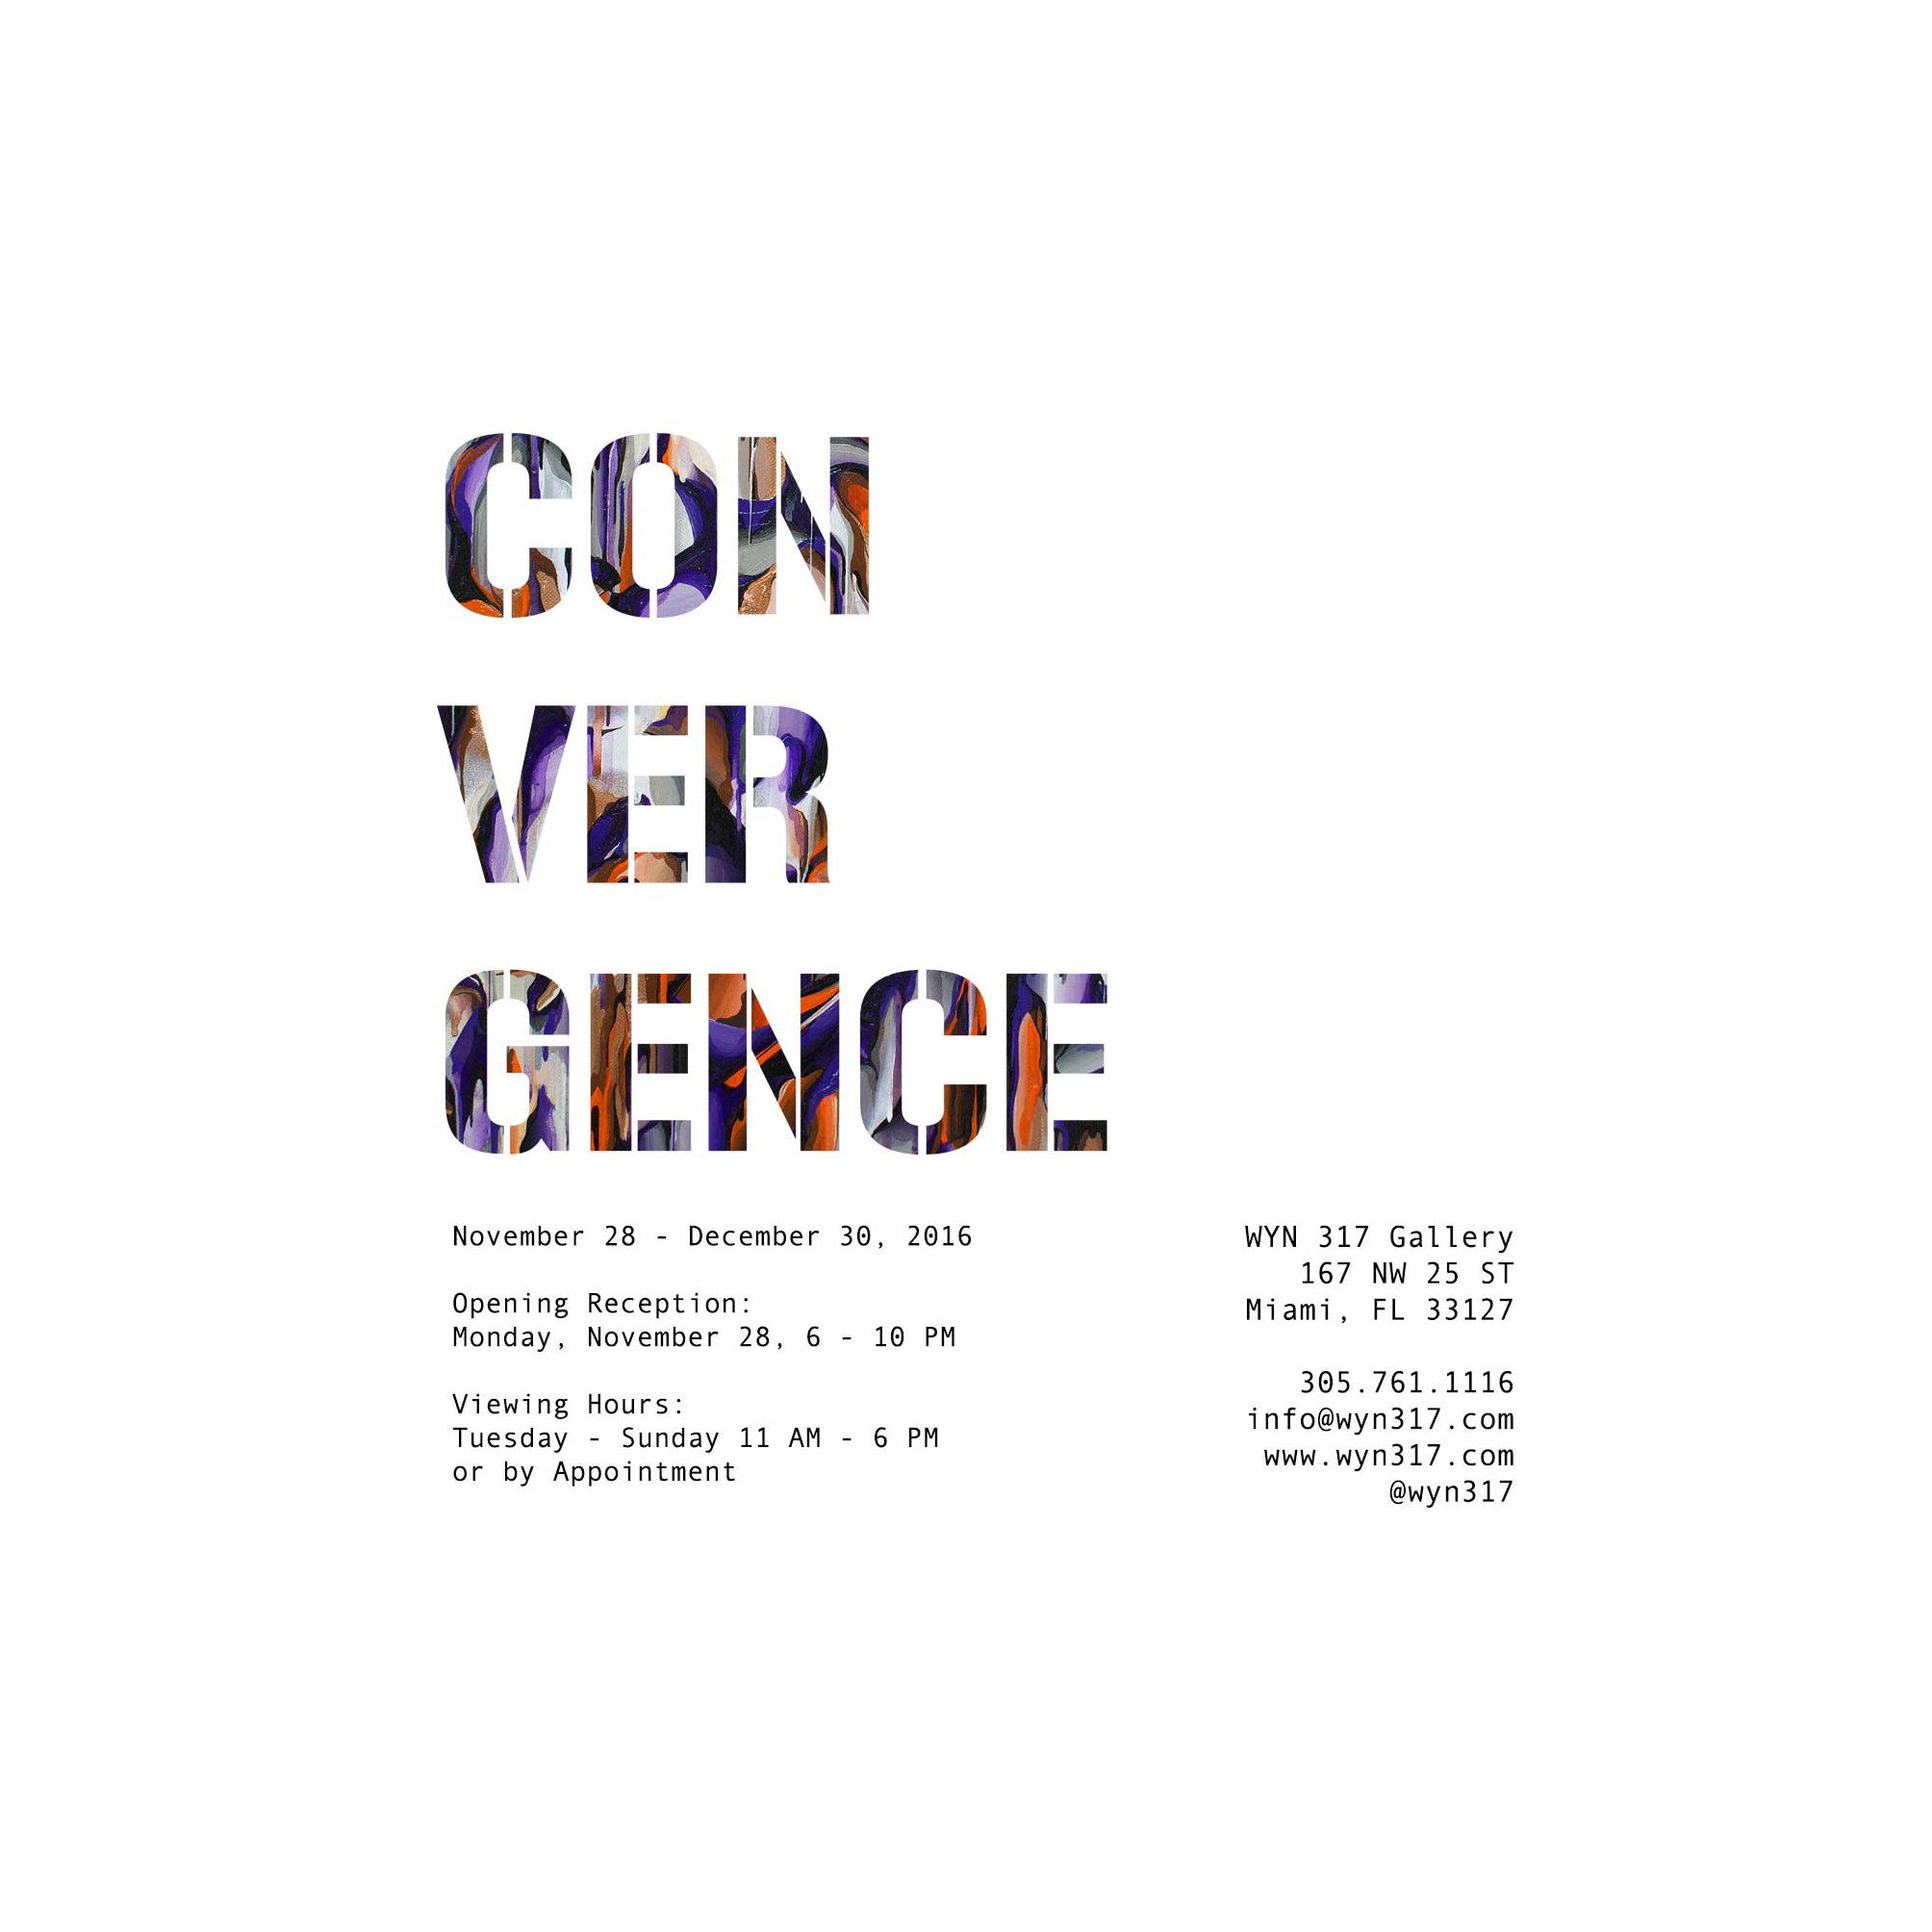 A work by Does - Flyer exhibition convergence art basel miami usa wyn 317